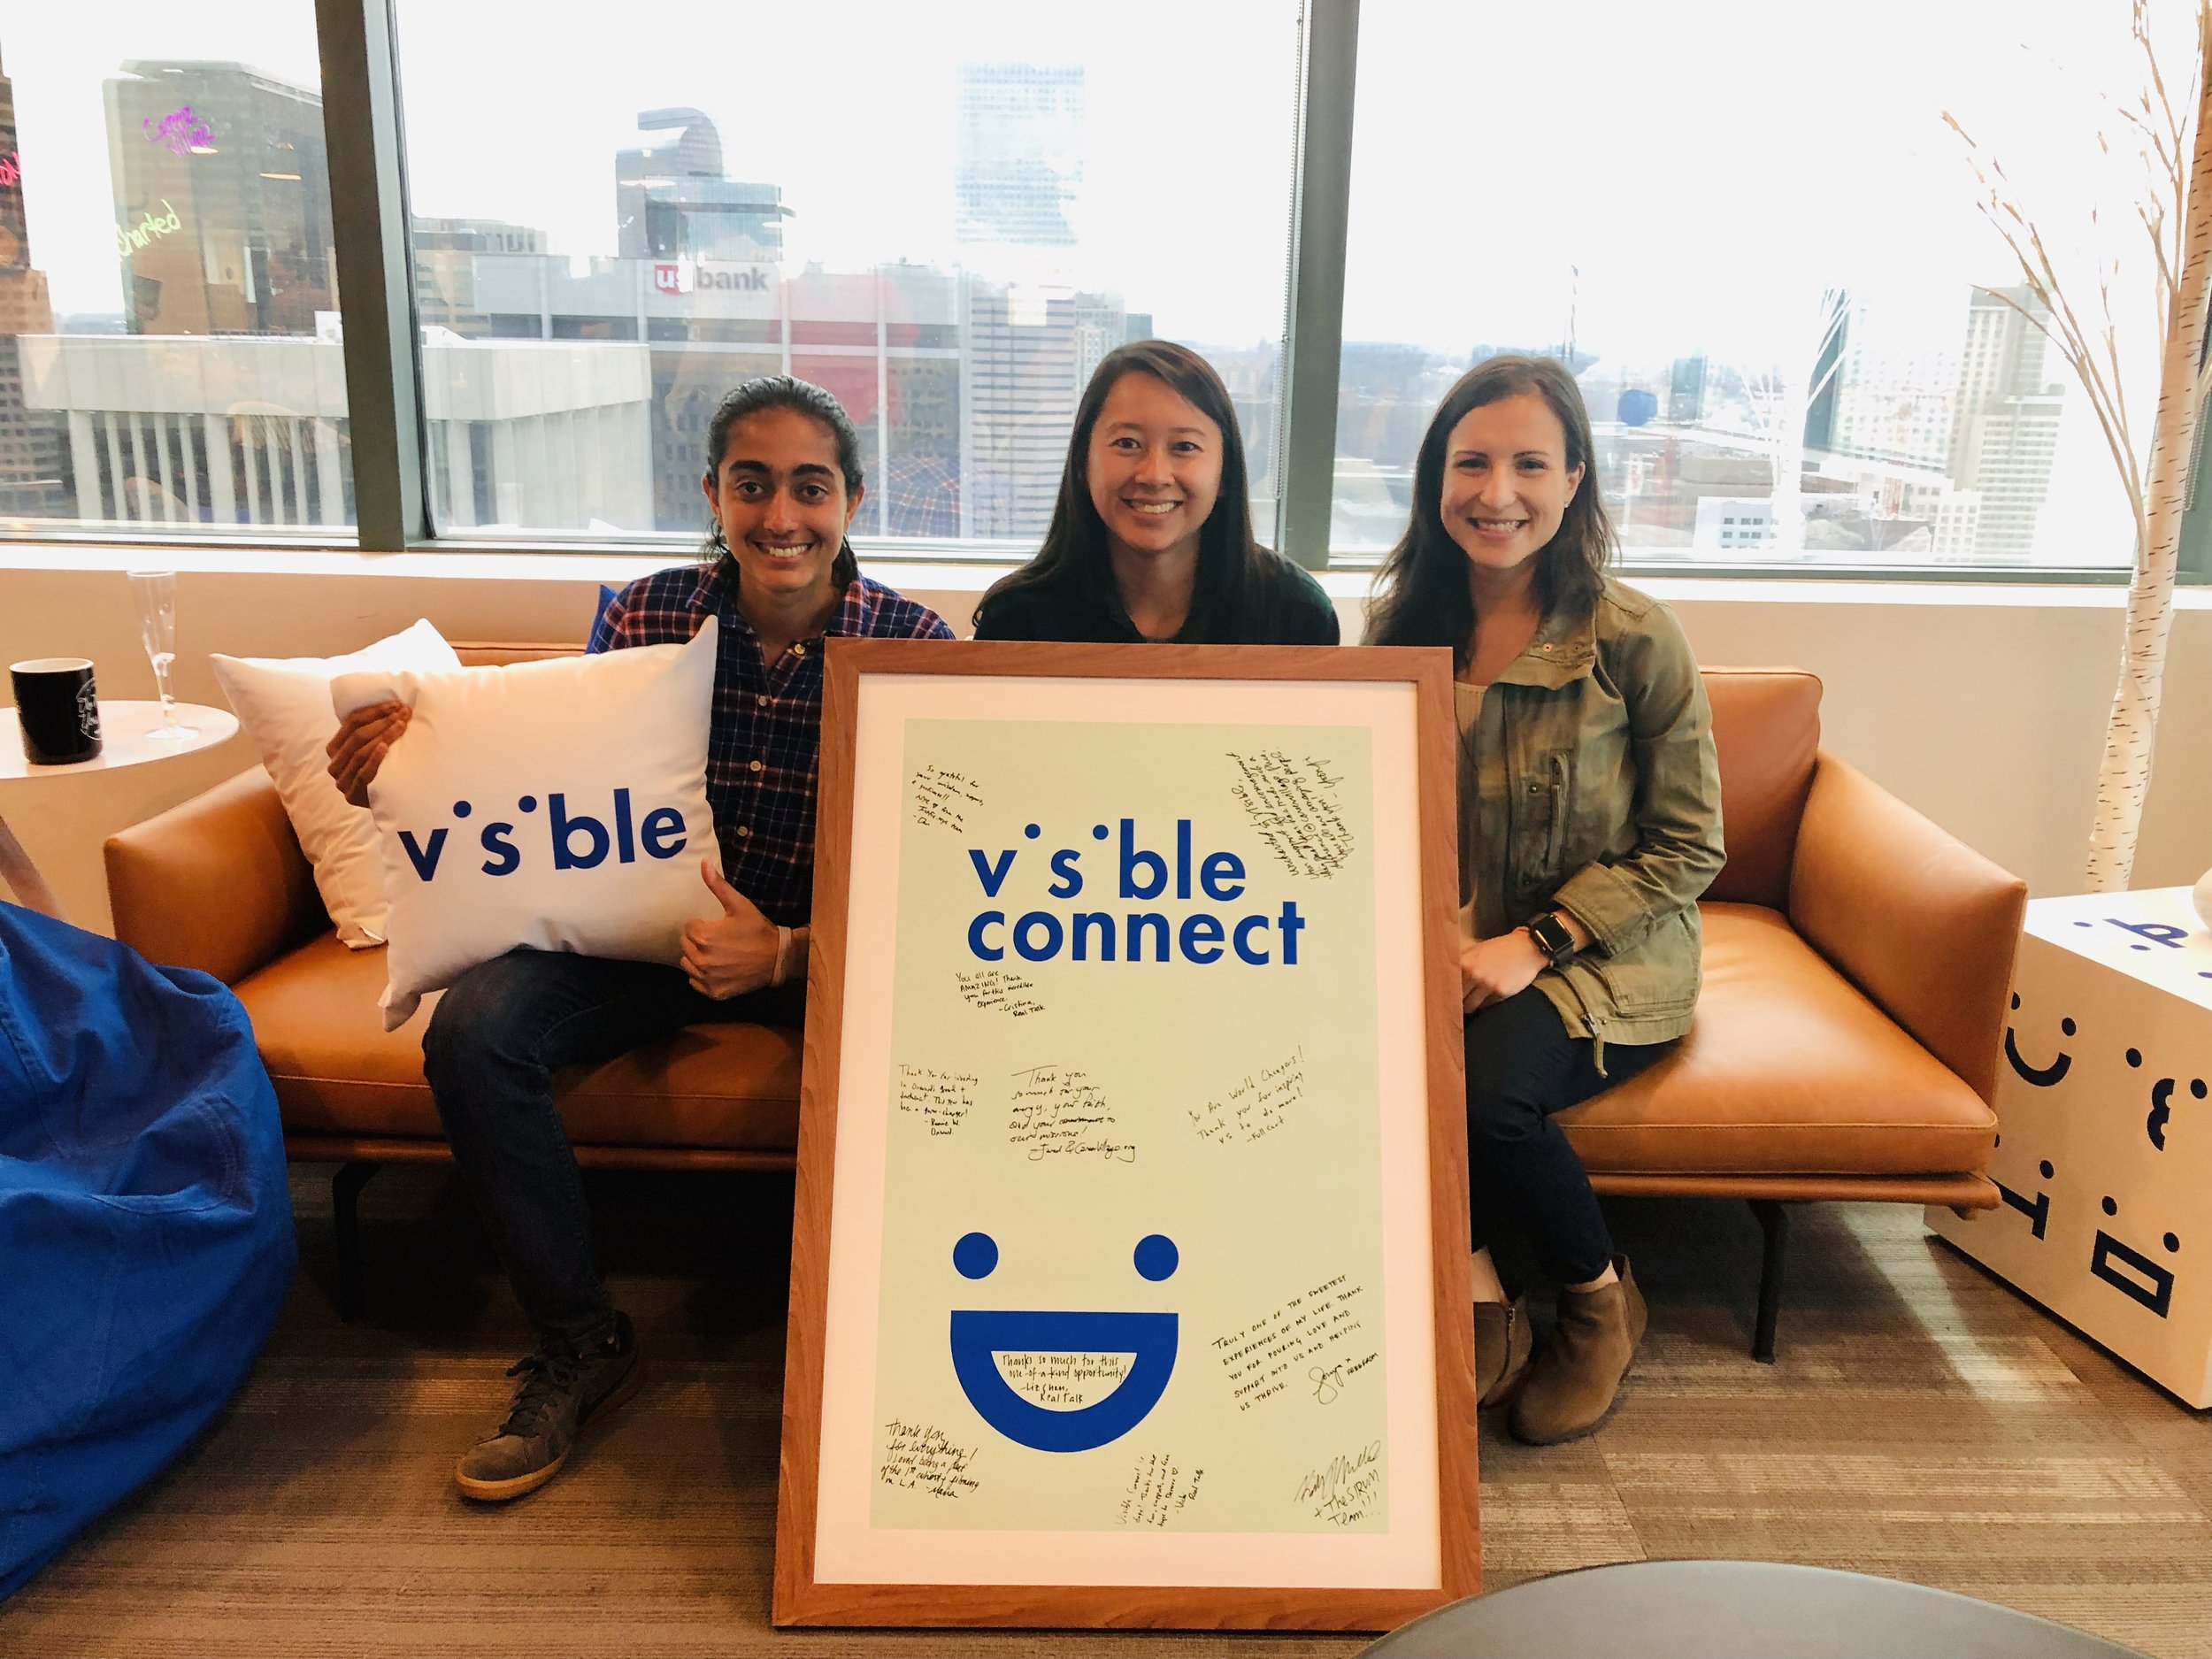 Vichi, Liz, and Cristina celebrated the end of the 9-month Visible Connect accelerator at Visible's offices in Denver, CO last week.